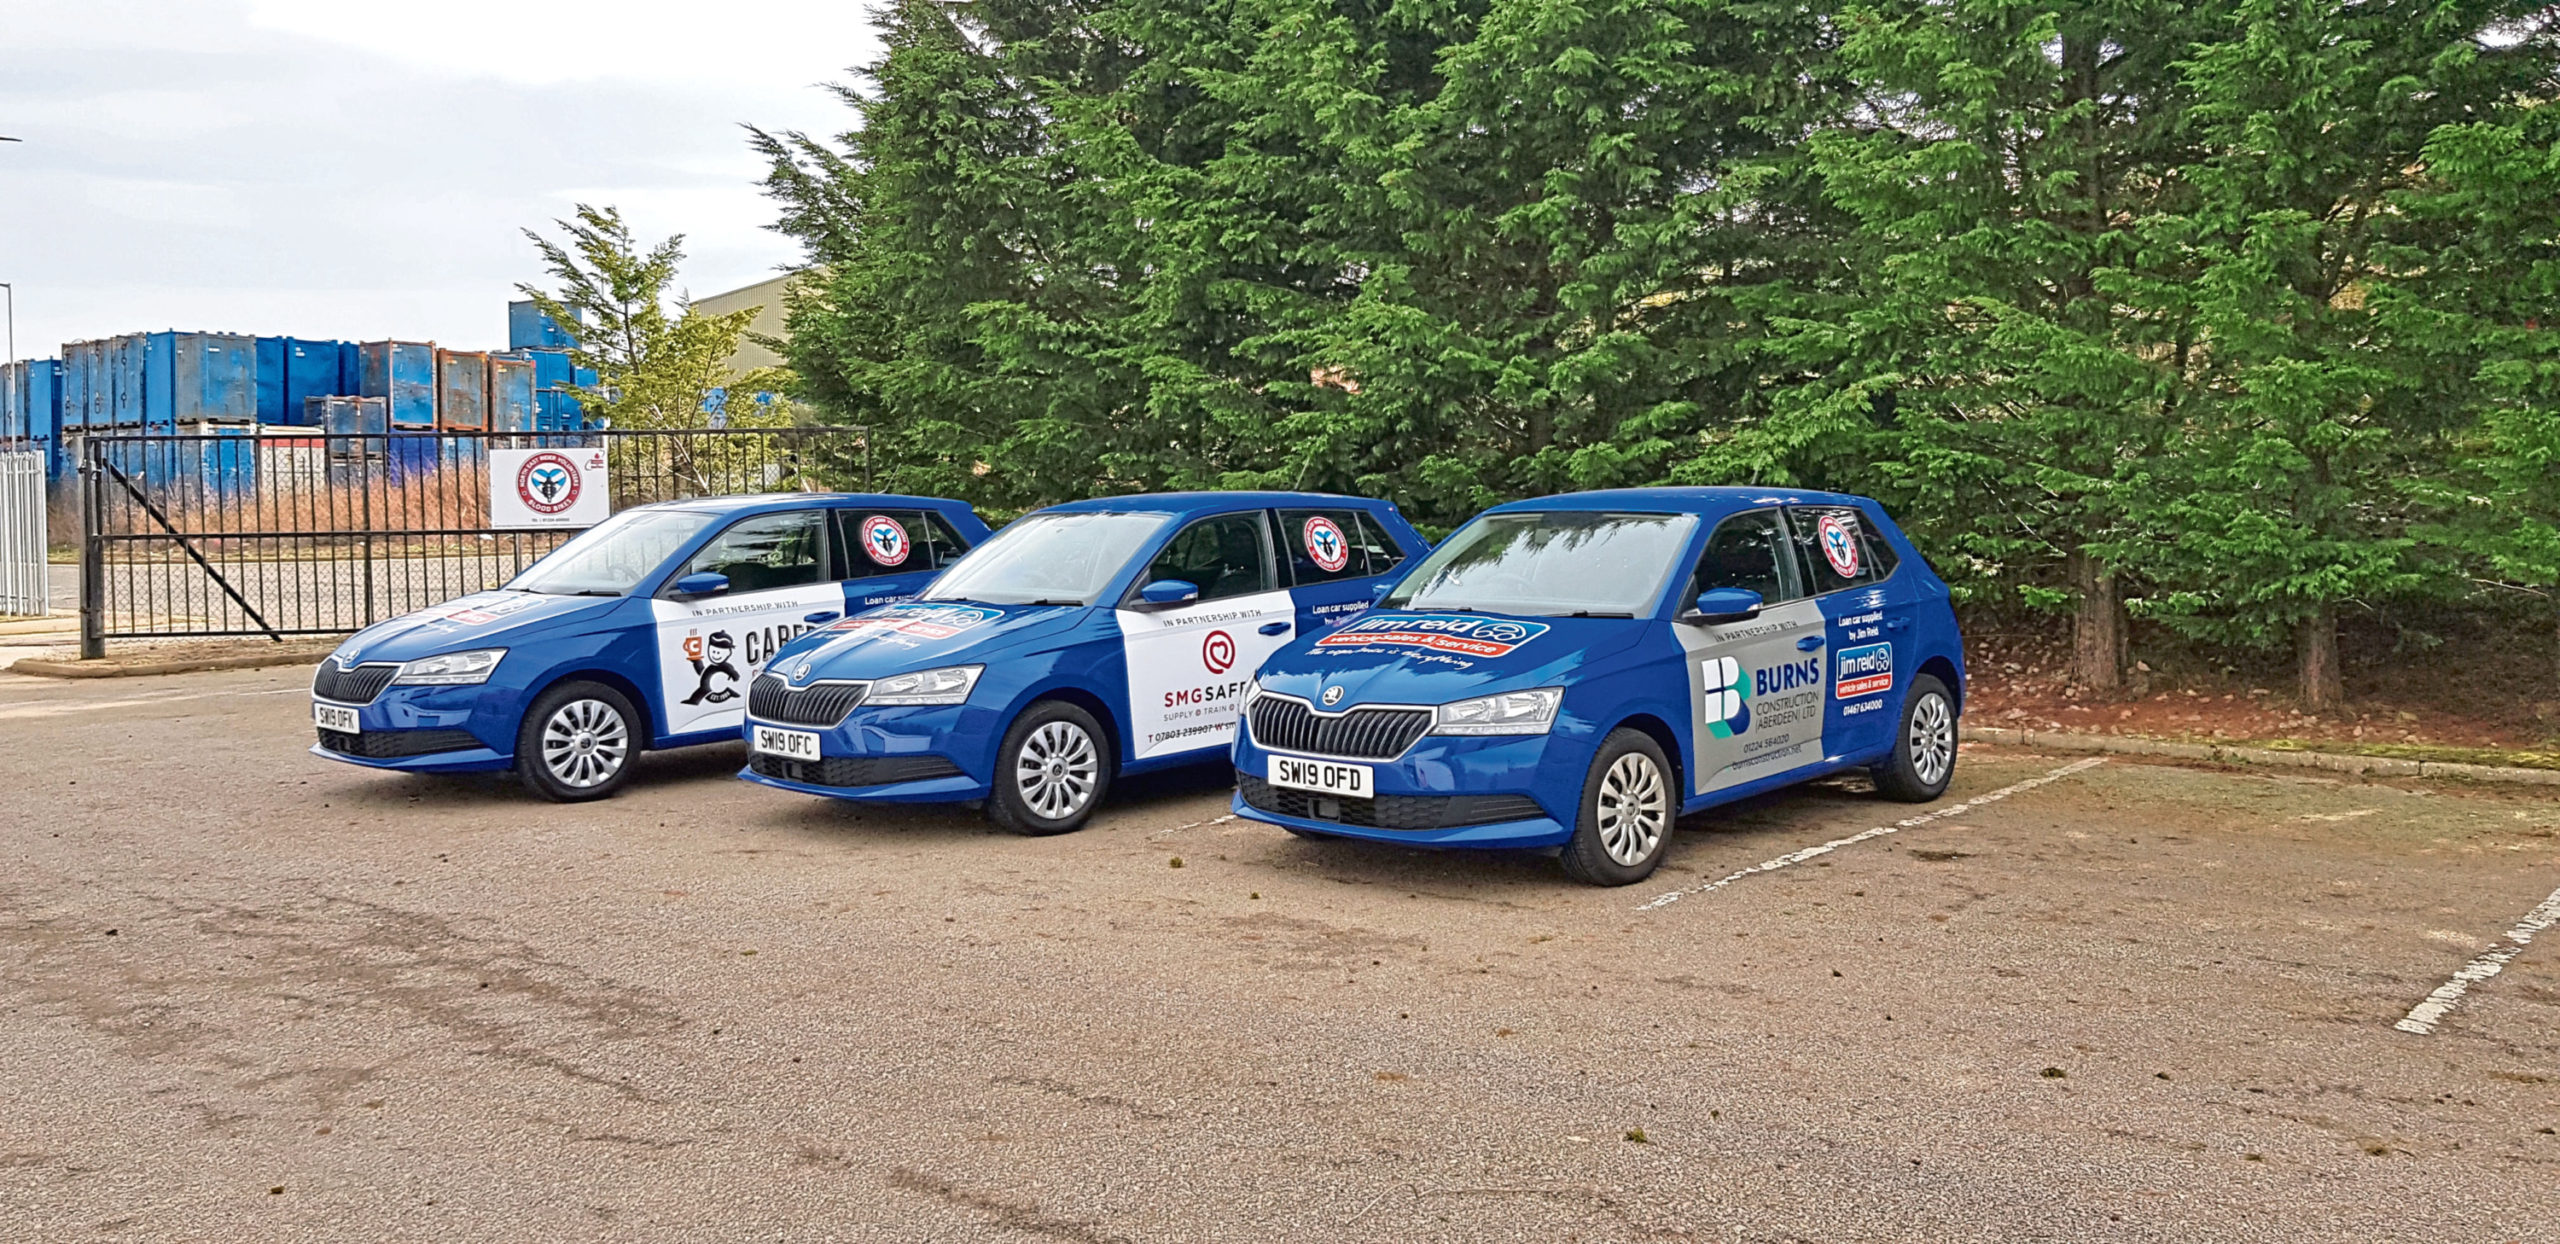 Three cars have been loaned to the blood delivery service